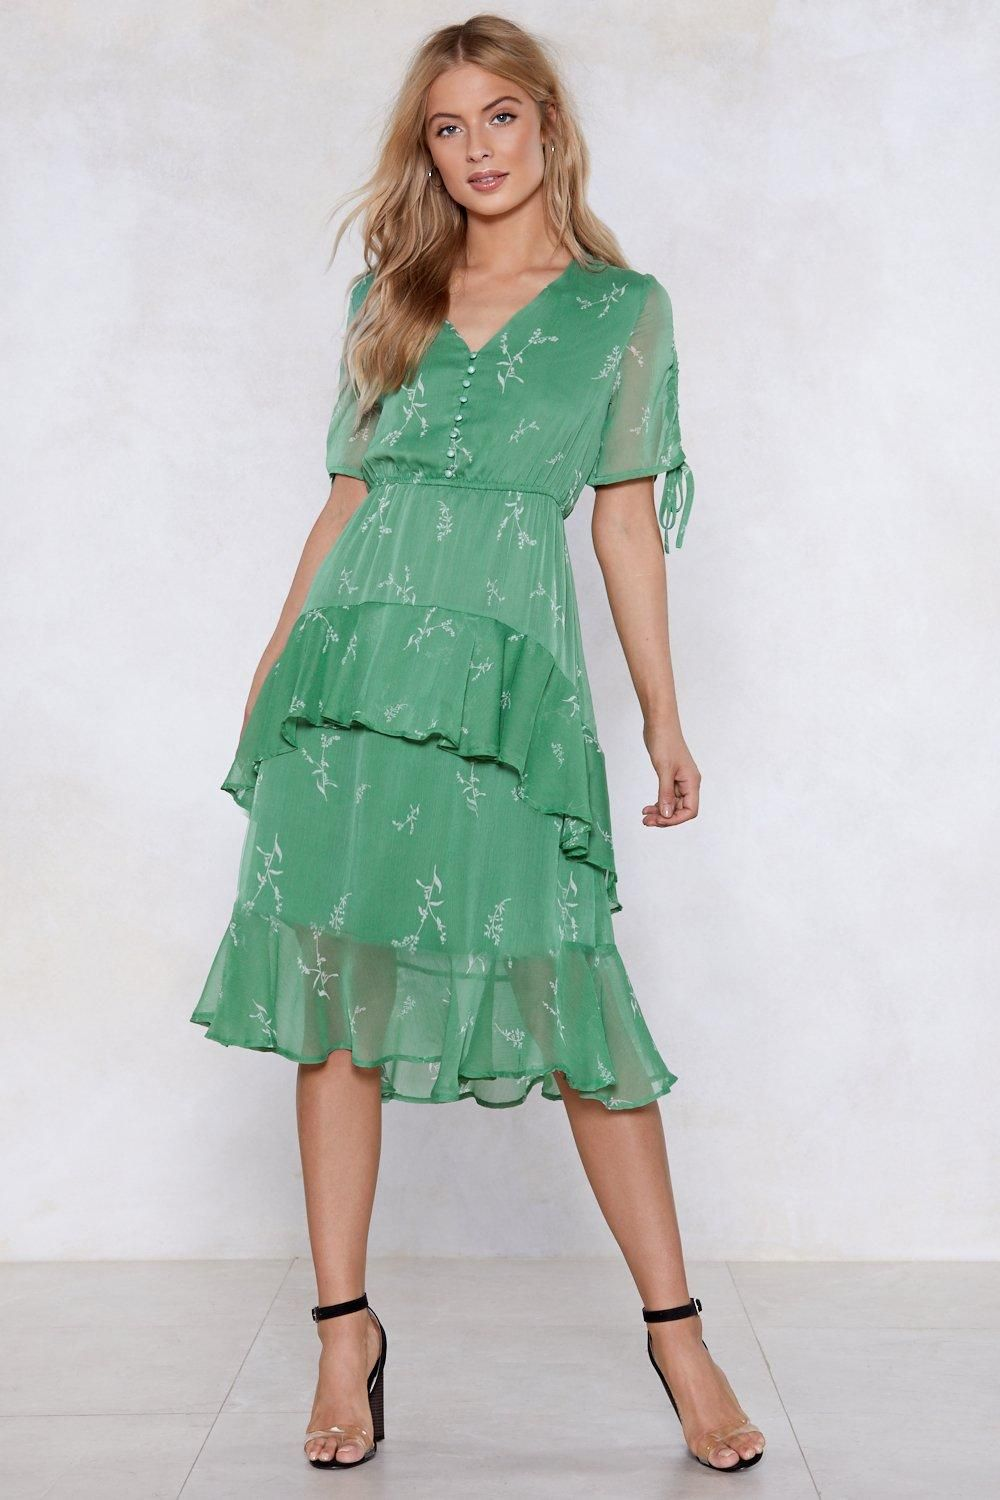 b384e36128 The Spring Affair Dress comes in sheer chiffon and features a solid  underlay